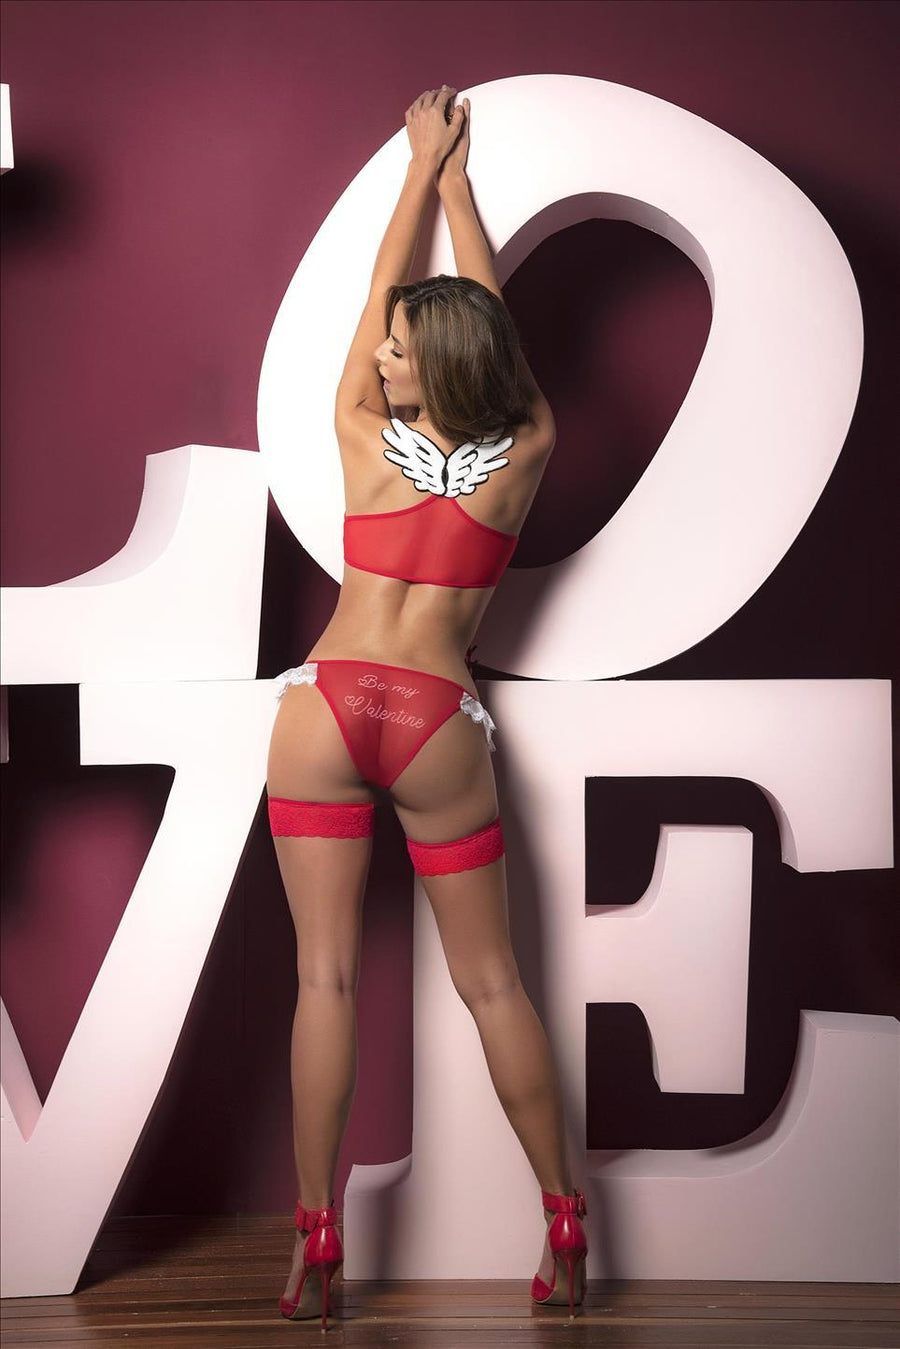 mapale Red / S/M Red Lace Underboob Top w/ Ruffle Bottom Set SHC-8462-RED-S/M-MA Red Lace Underboob Top w/ Ruffle Bottom Set | Mapale 8462 | SHOP NOW Apparel & Accessories > Clothing > Underwear & Socks > Lingerie